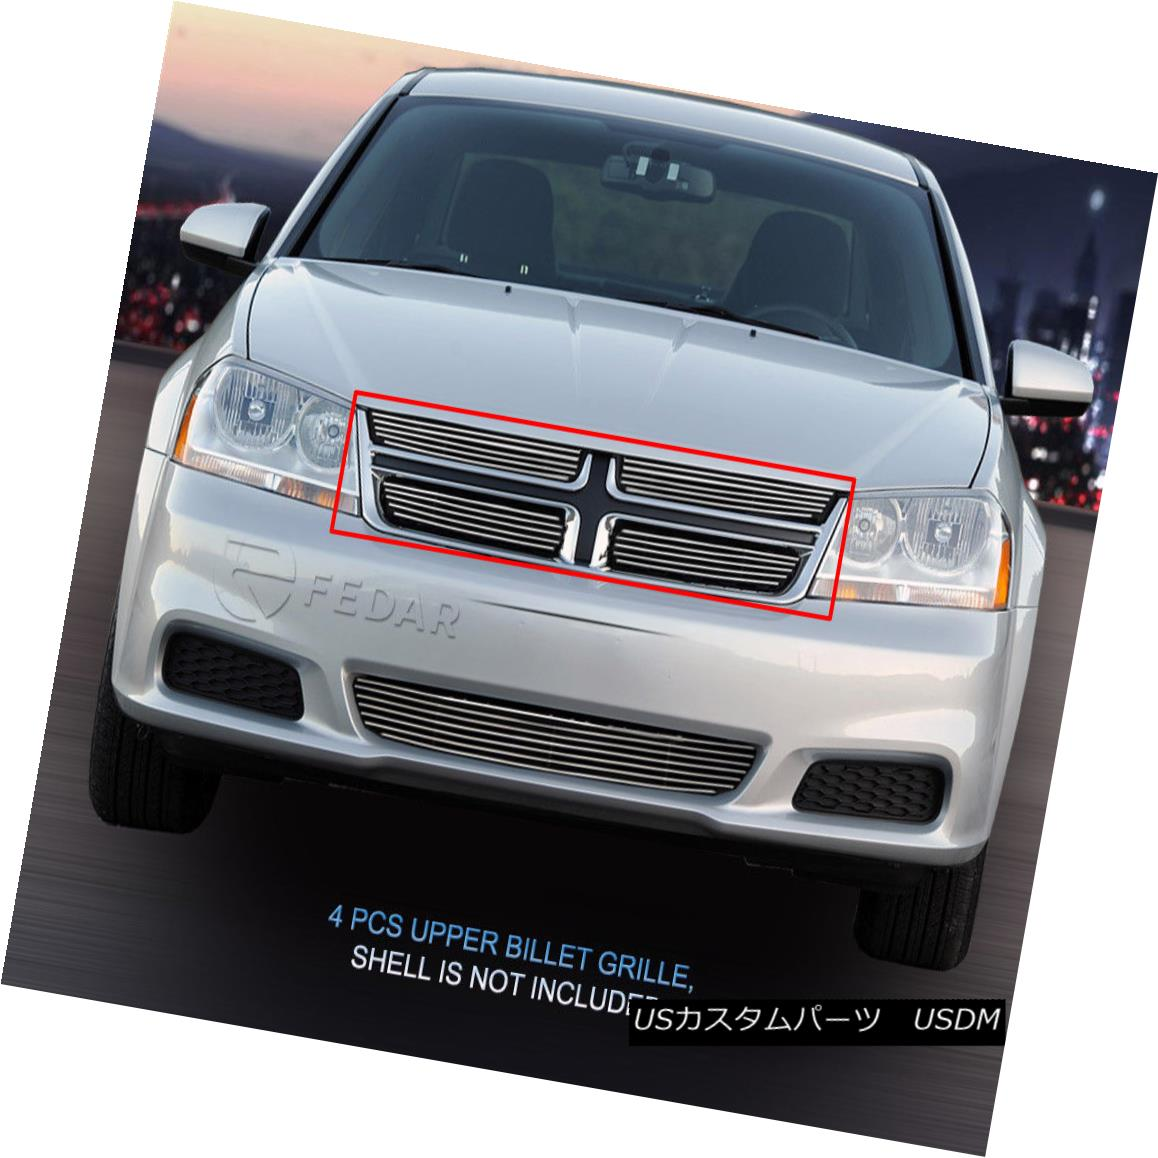 グリル Fedar Fits 2011-2014 Dodge Avenger Polished Billet Grille Insert Fedarは2011-2014 Dodge Avenger Polished Billet Grilleインサートを適合